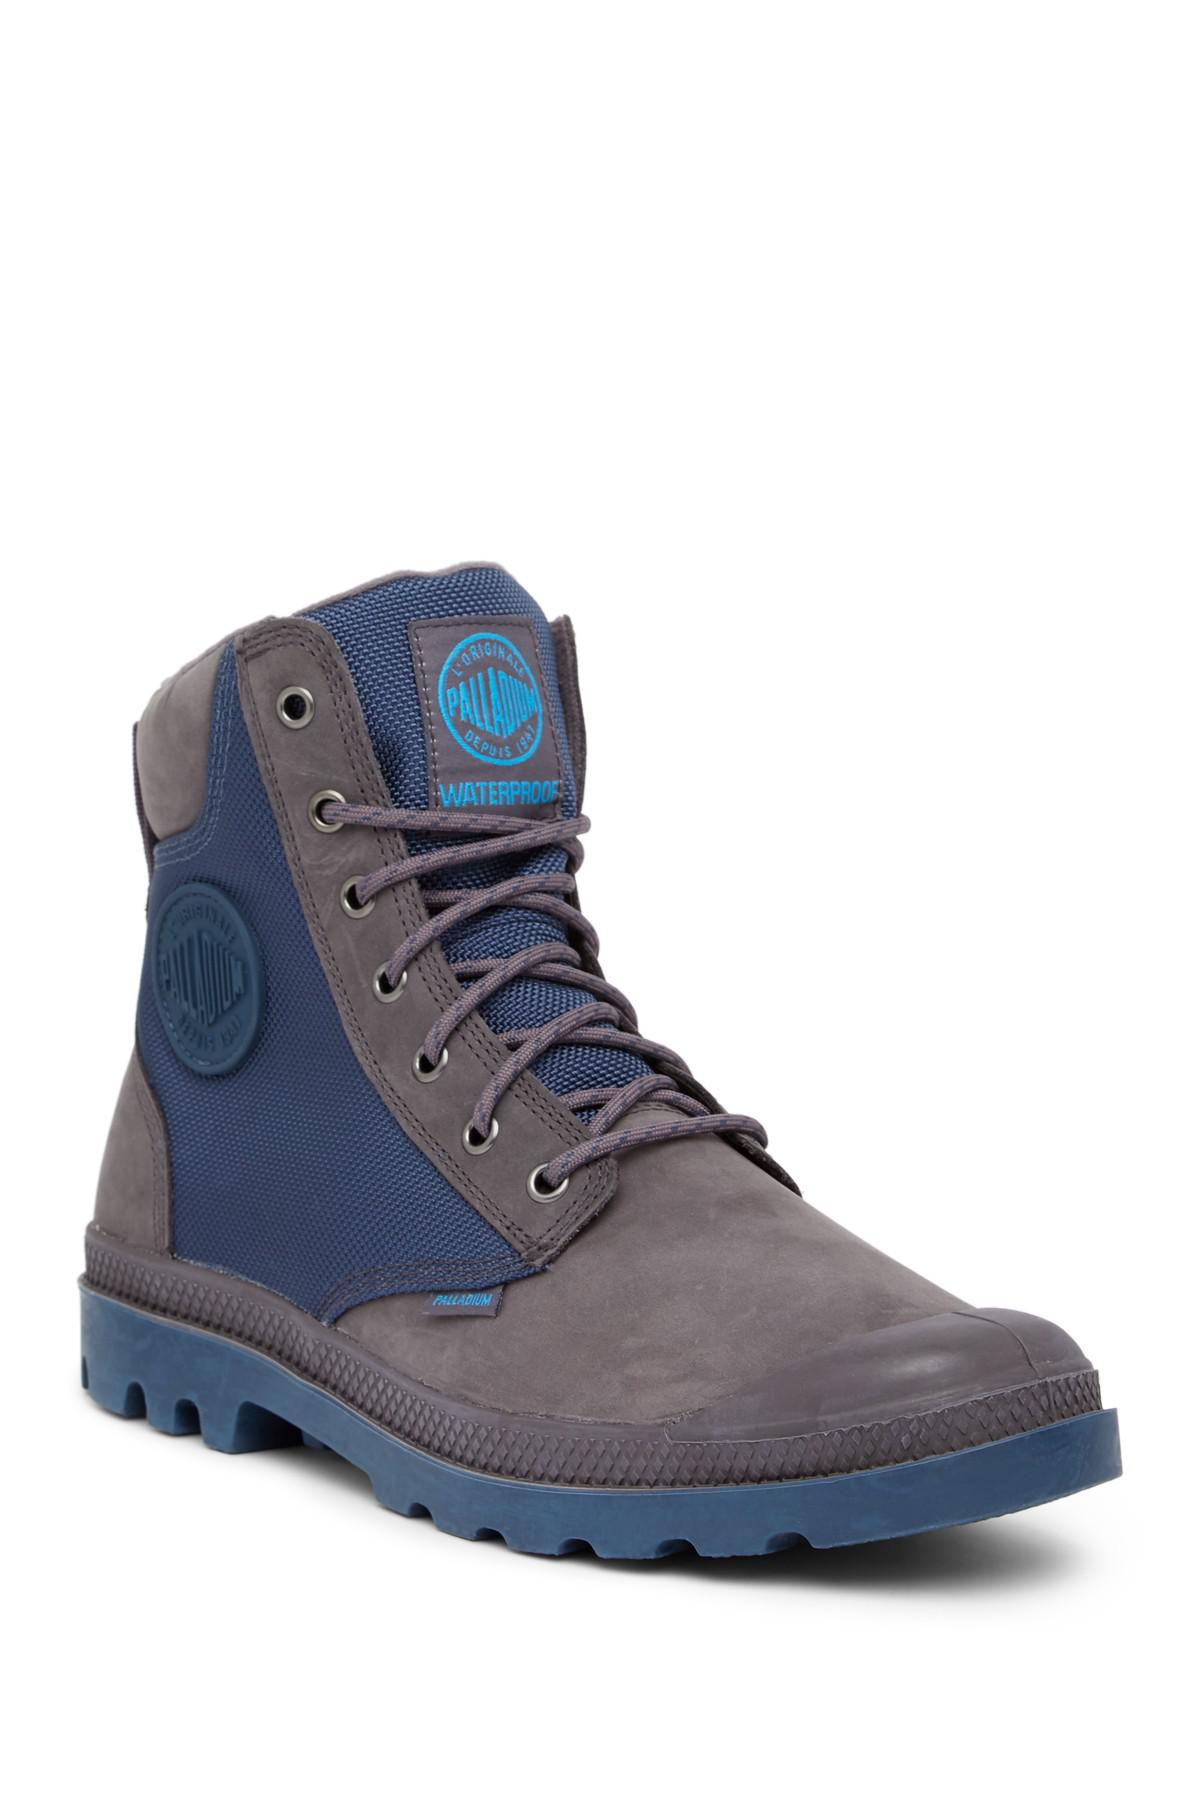 Lyst - Palladium Pampa Sport Cuff Waterproof Boot in Blue for Men 6a55e0c0d